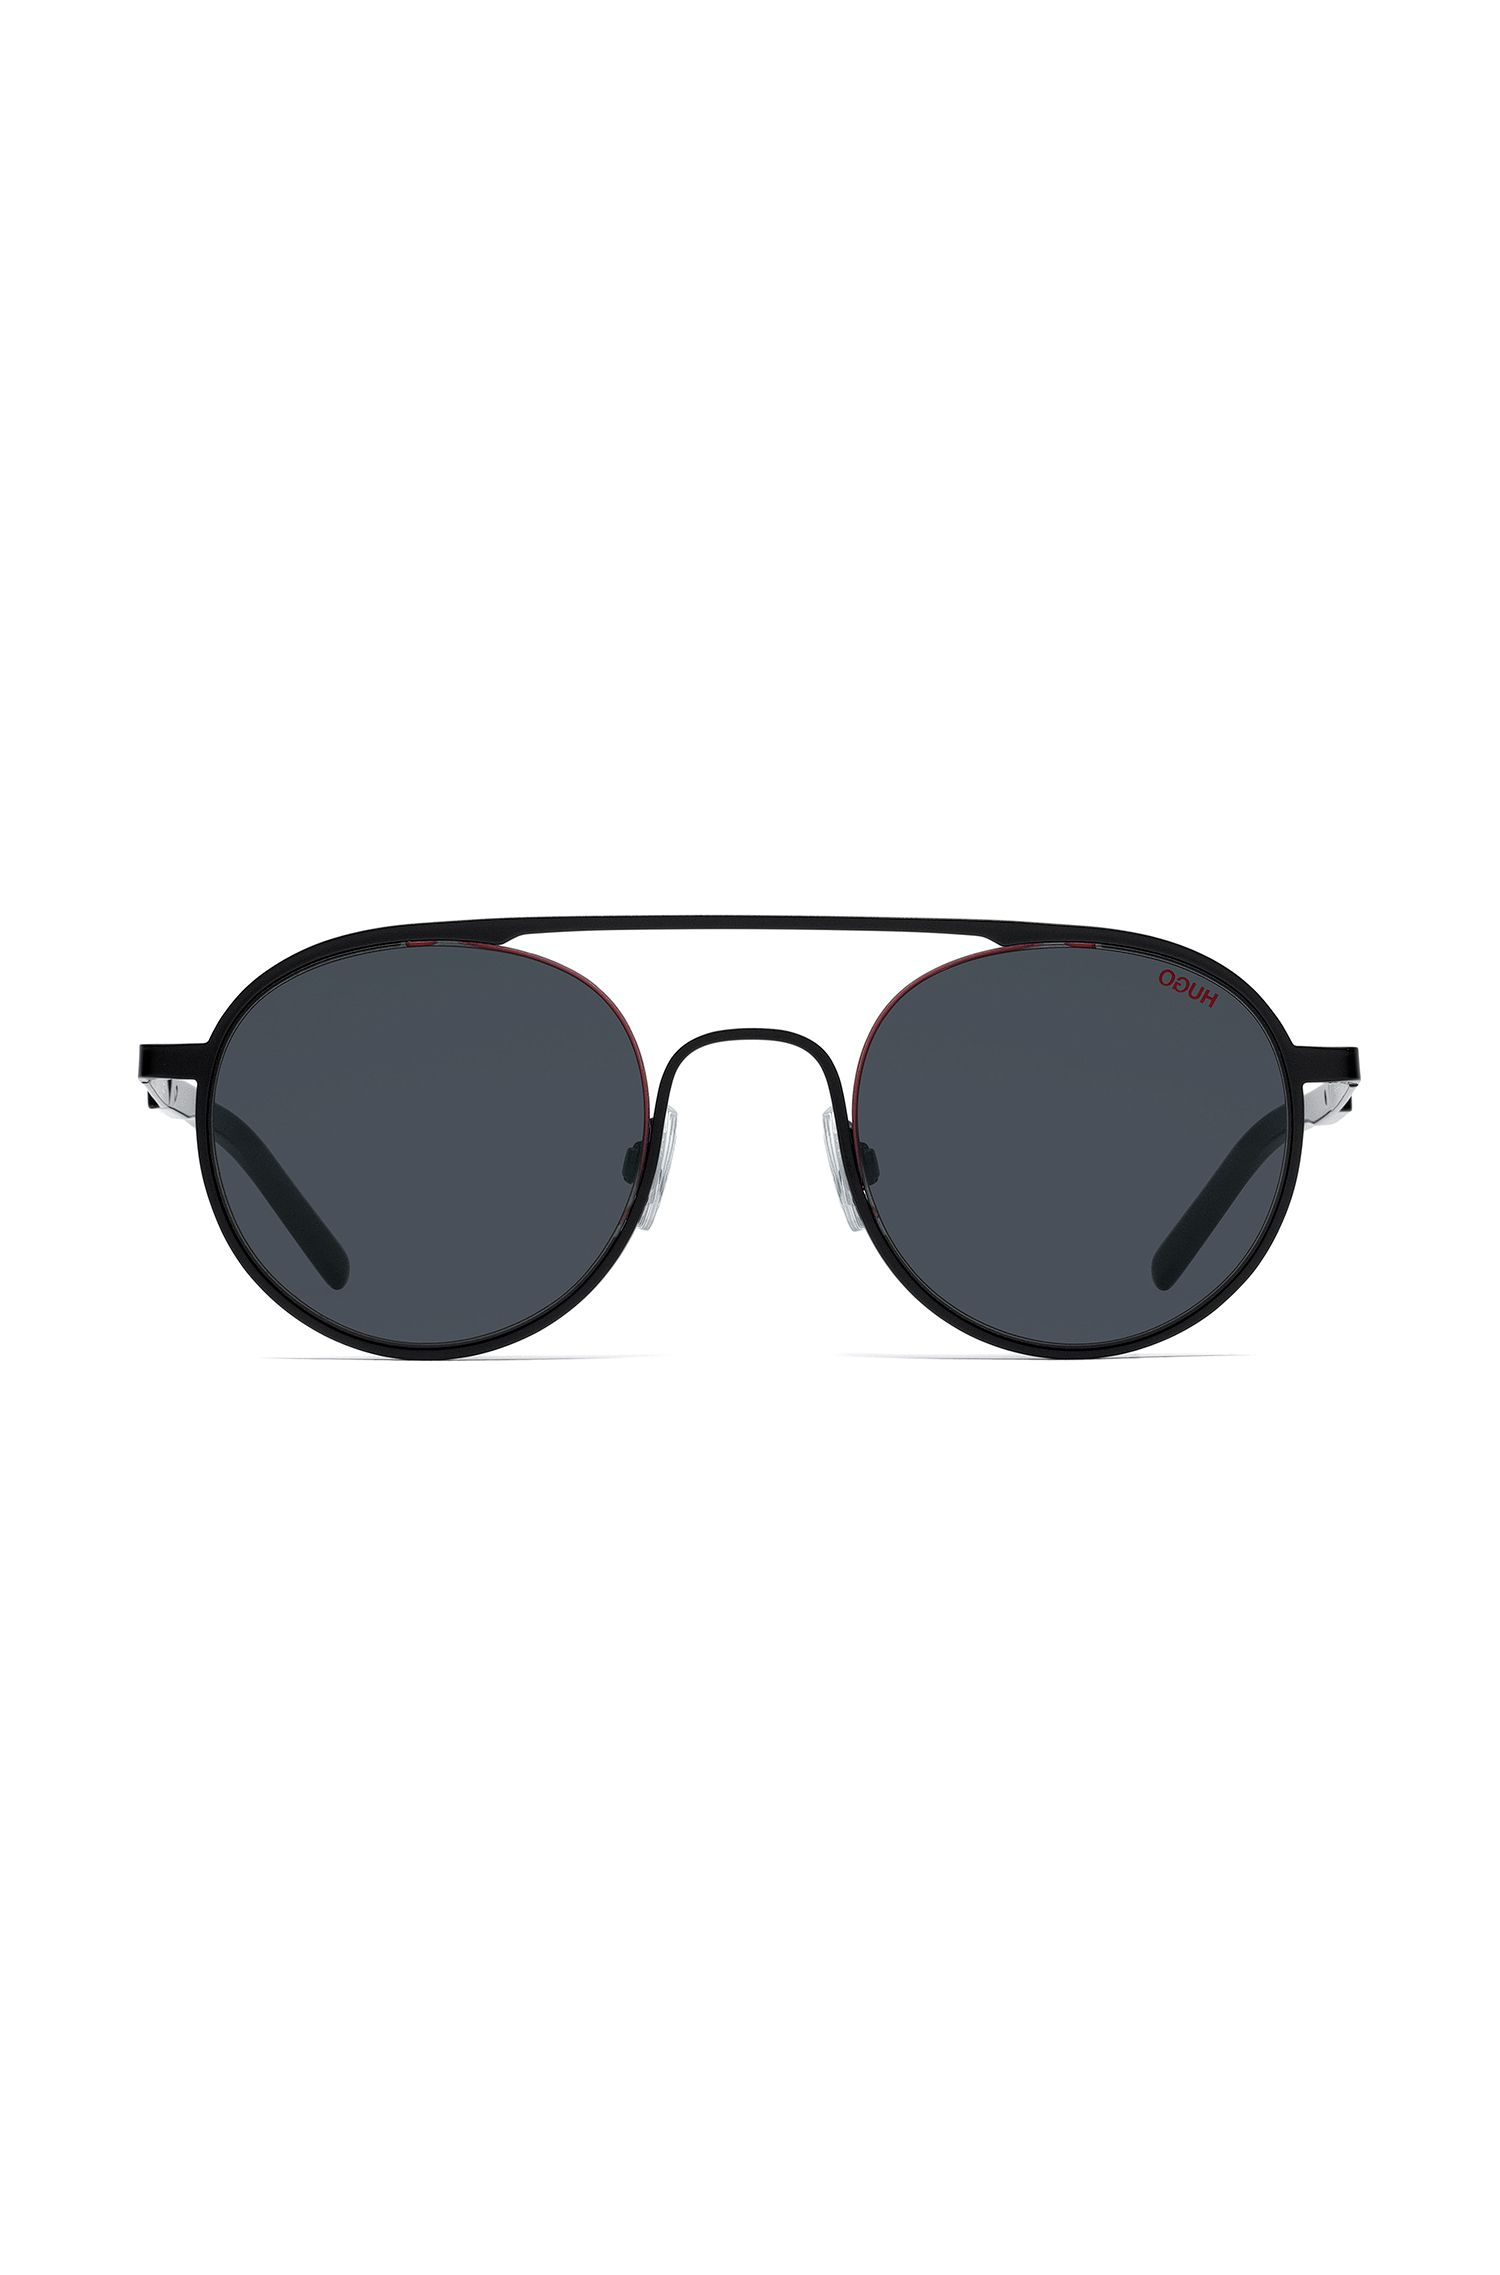 Unisex round sunglasses with black metal frames, Black